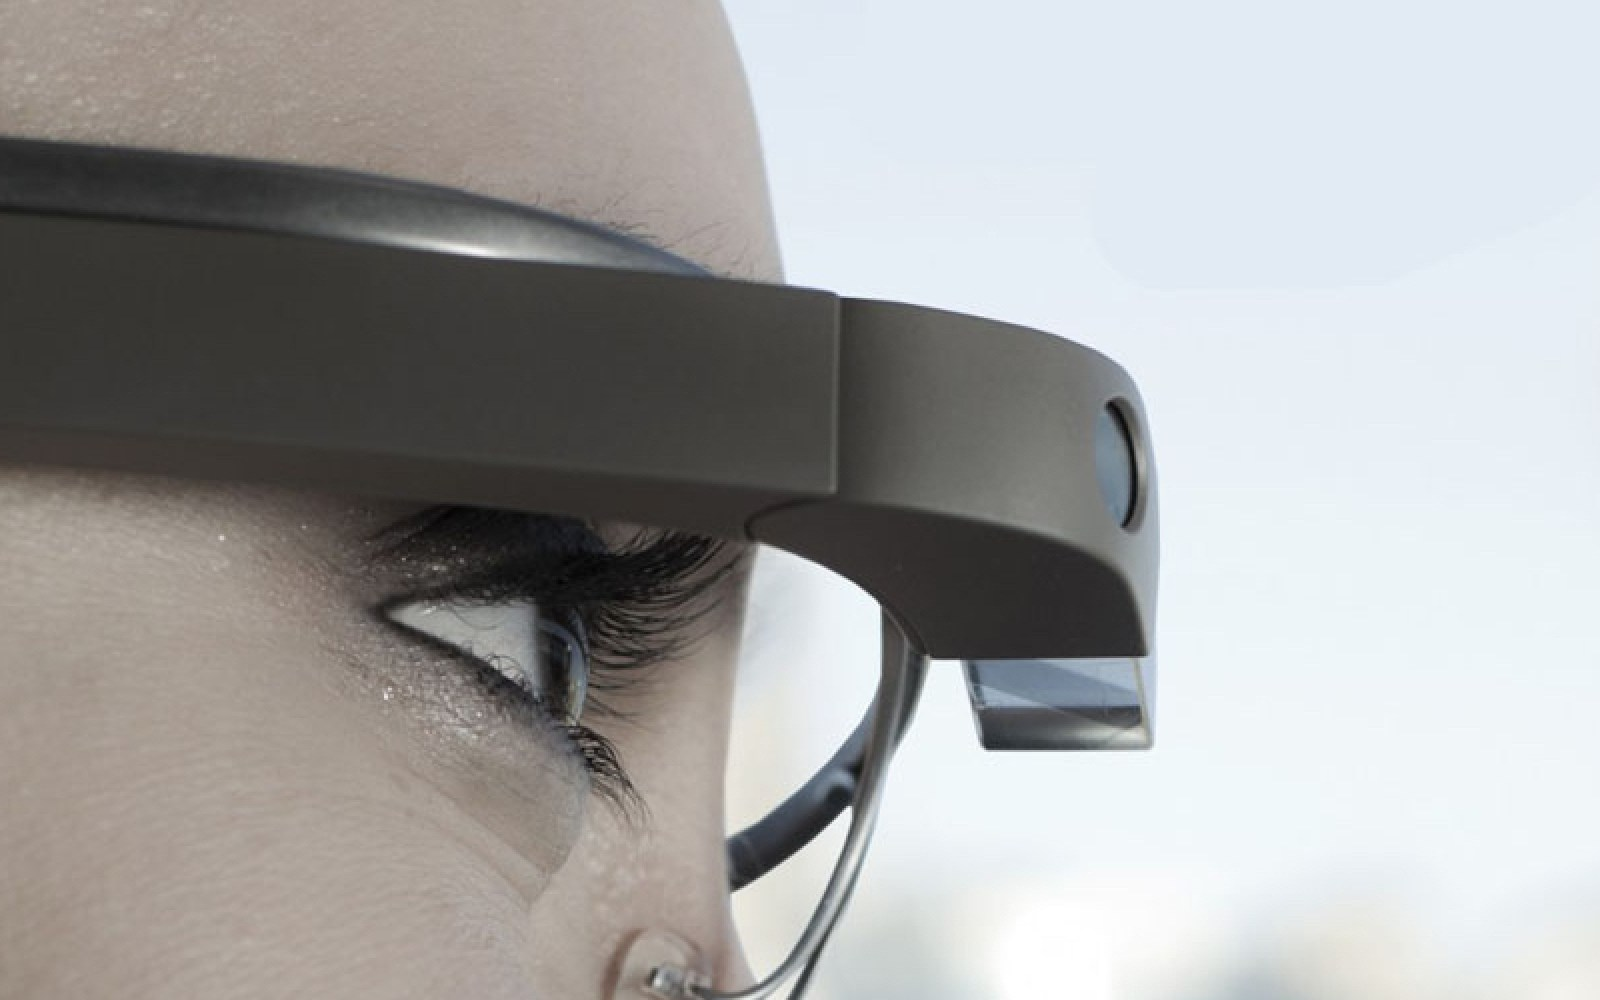 Report corroborates rumor that Project Aura will include audio-based devices to complement Glass headset